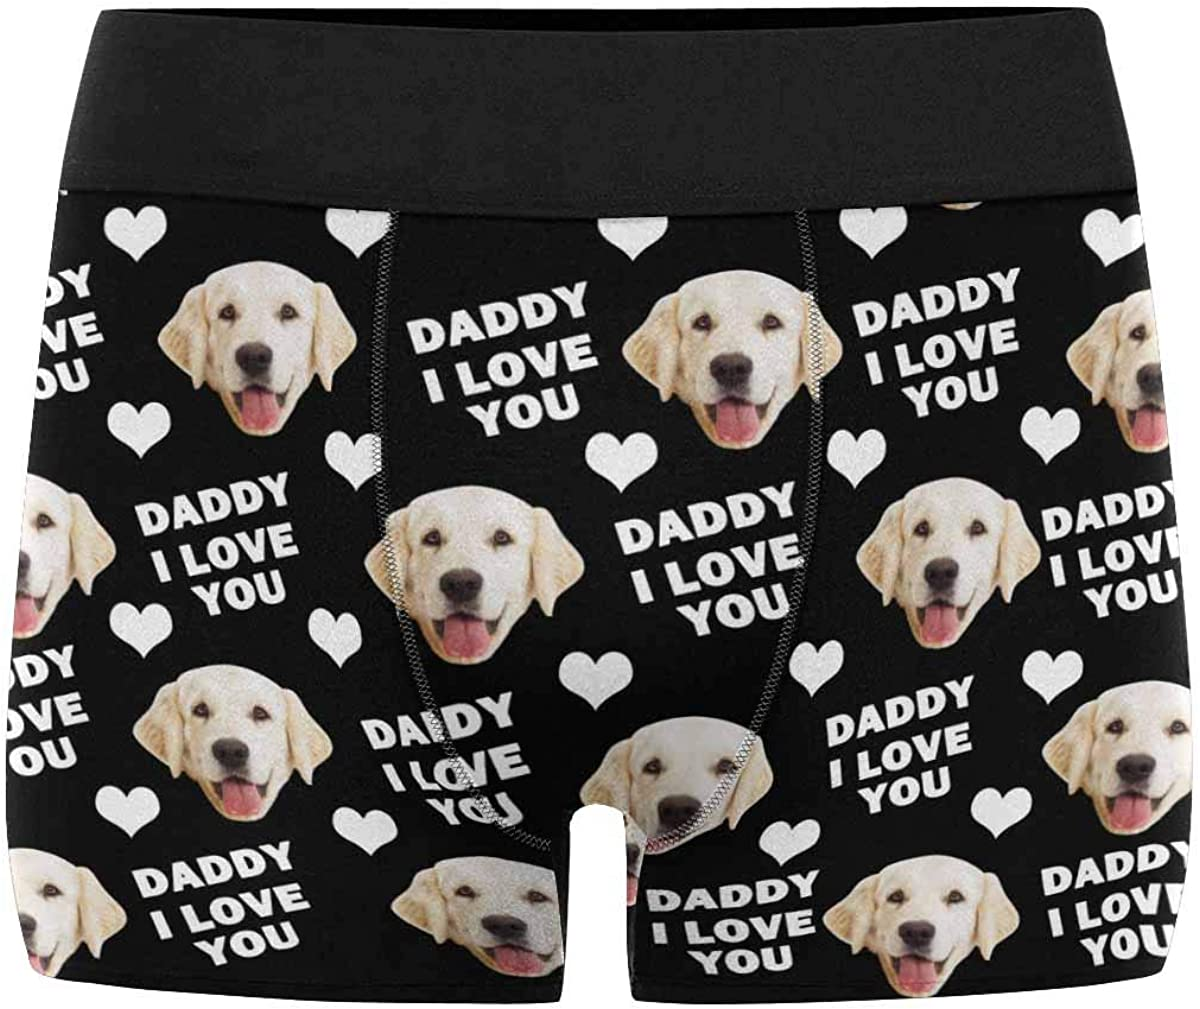 Custom Wife Face on Love Heart Valentines Day Funny Boxer Shorts Novelty Briefs Underpants Printed with Photo